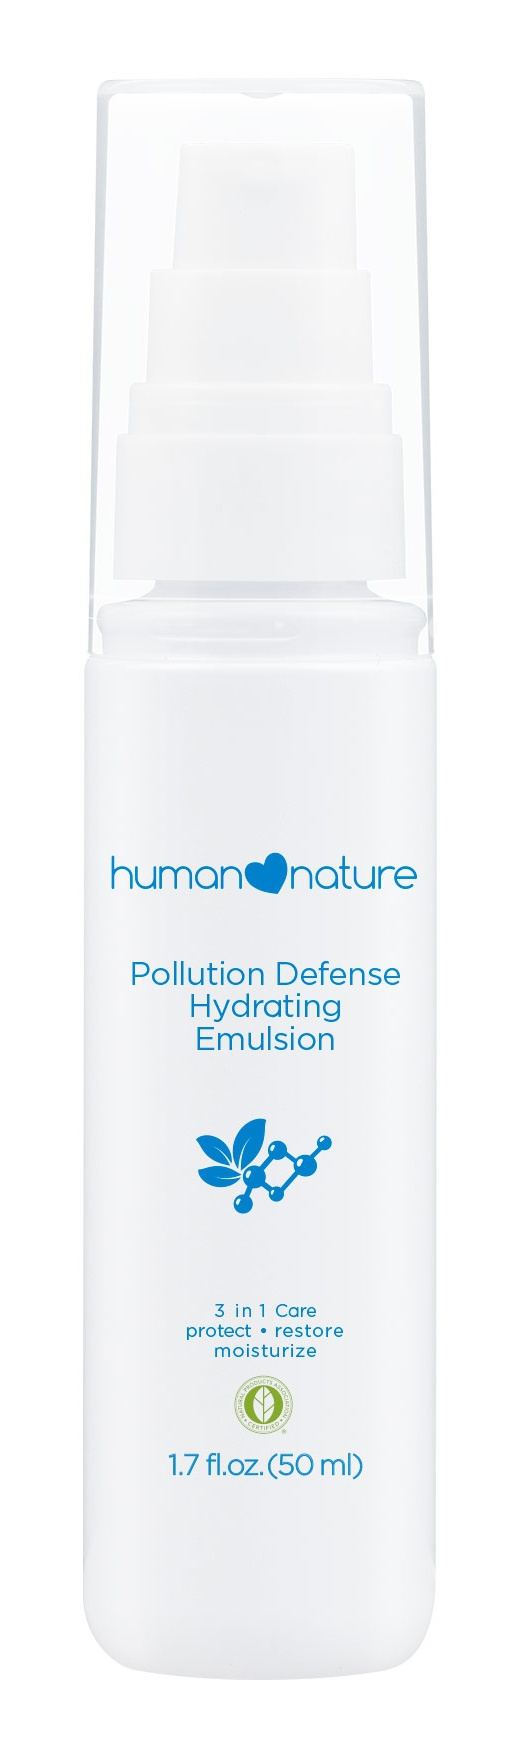 human  nature Pollution Defense Hydrating Emulsion